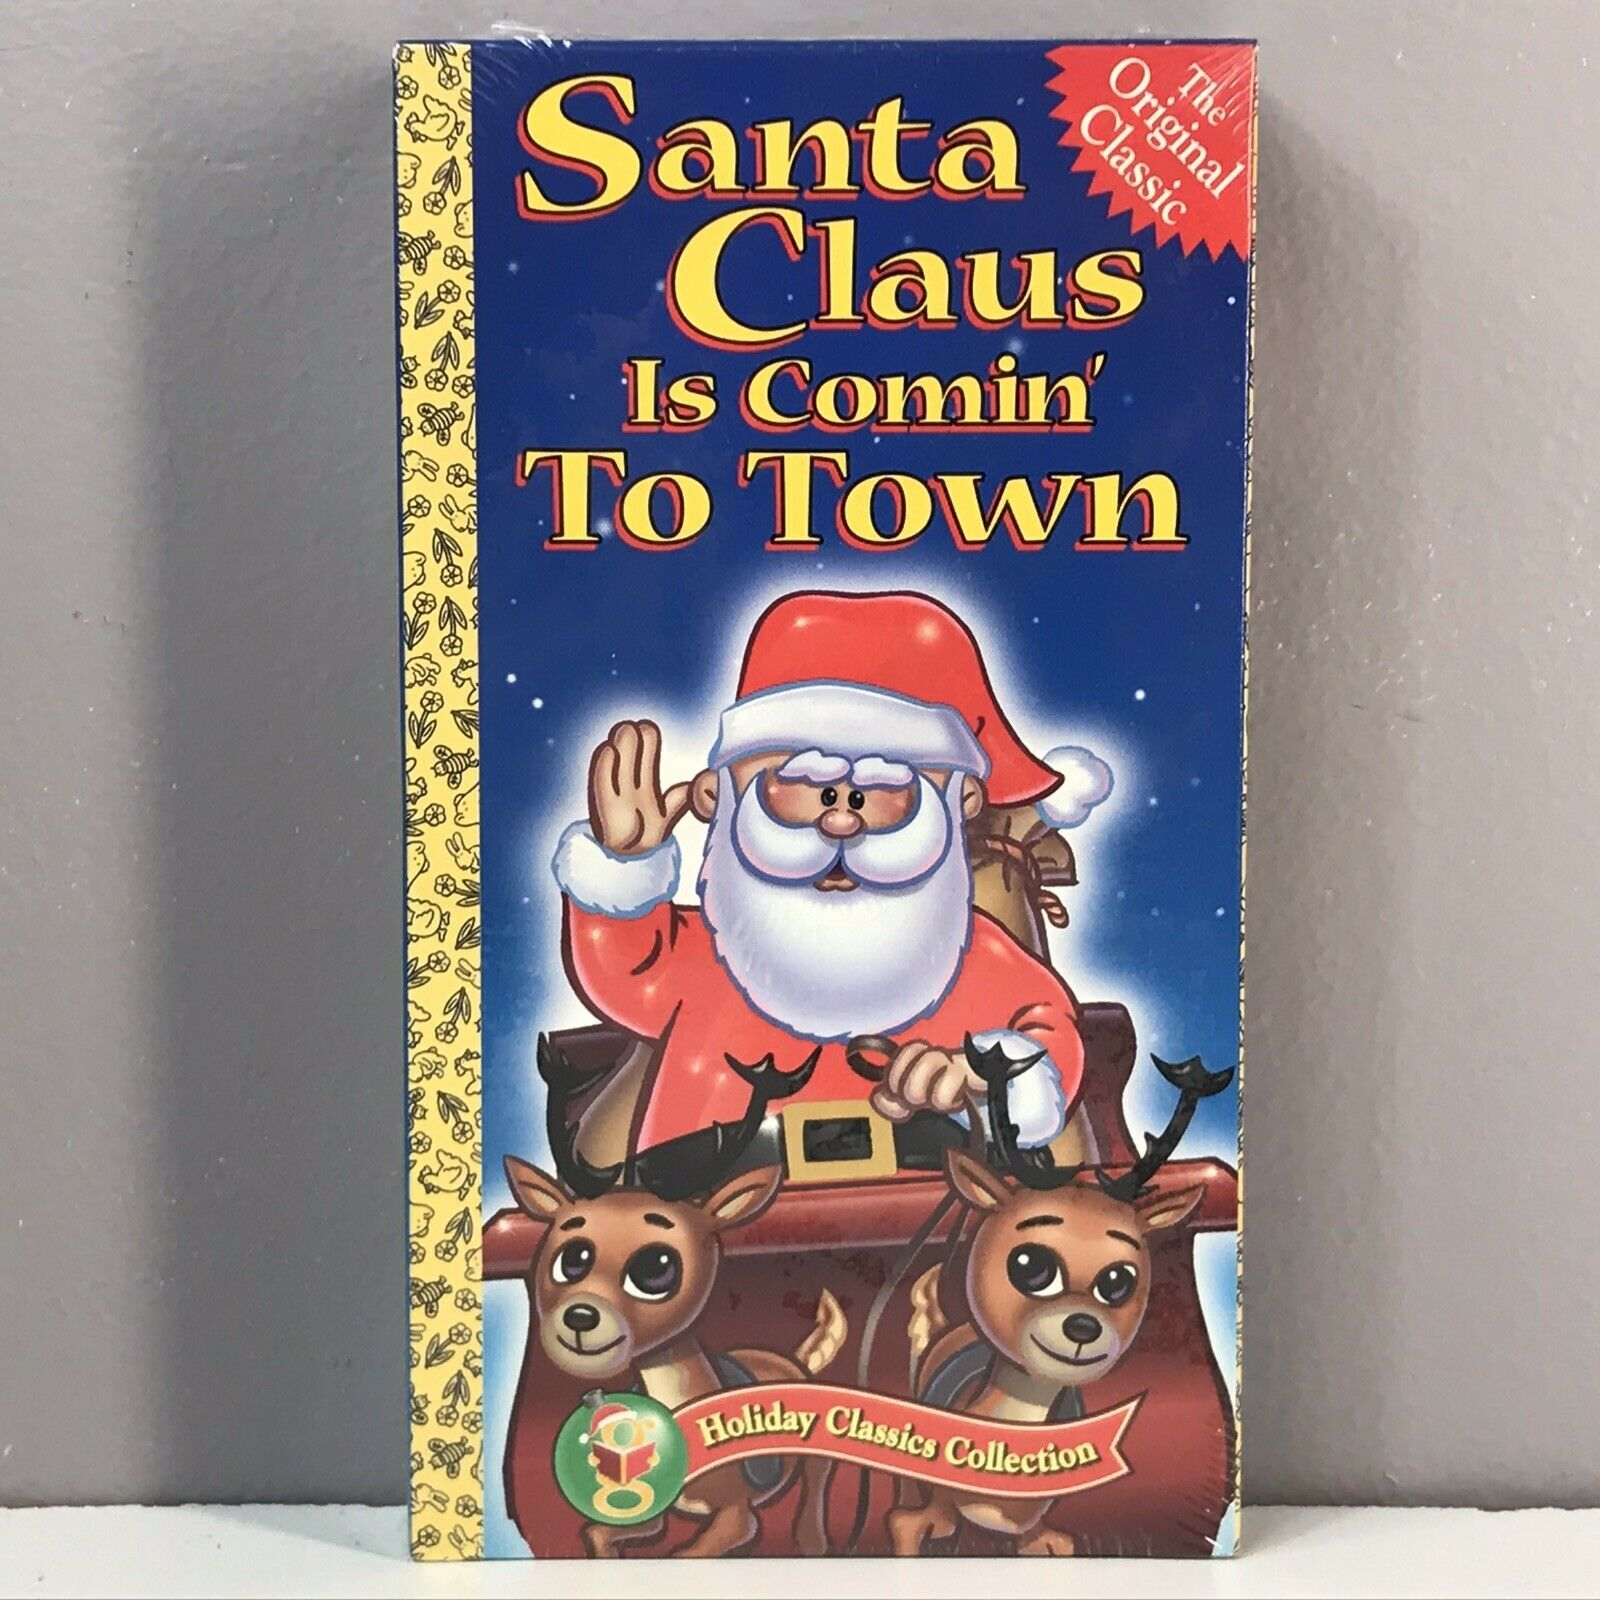 Santa Claus is Coming to Town (Golden Books Family Entertainment)